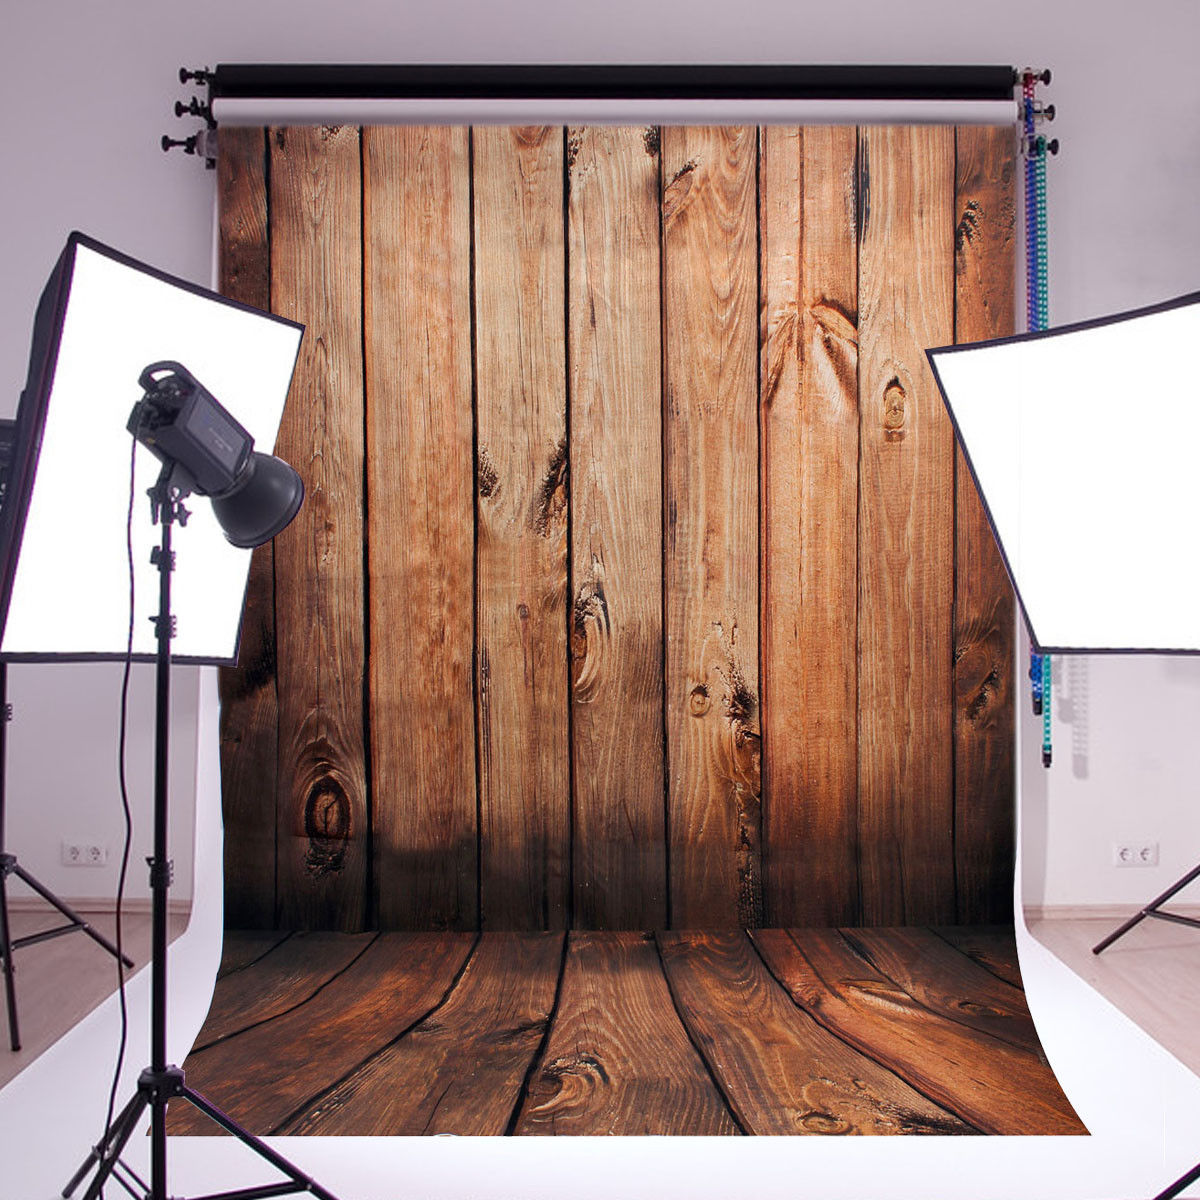 Photography Backdrops vinyl background for photo studio vintage wood baby background 2.1*1.5m Hot Sale 10x10ft vinyl custom photography backdrops prop vintage photography background ttwv 6109